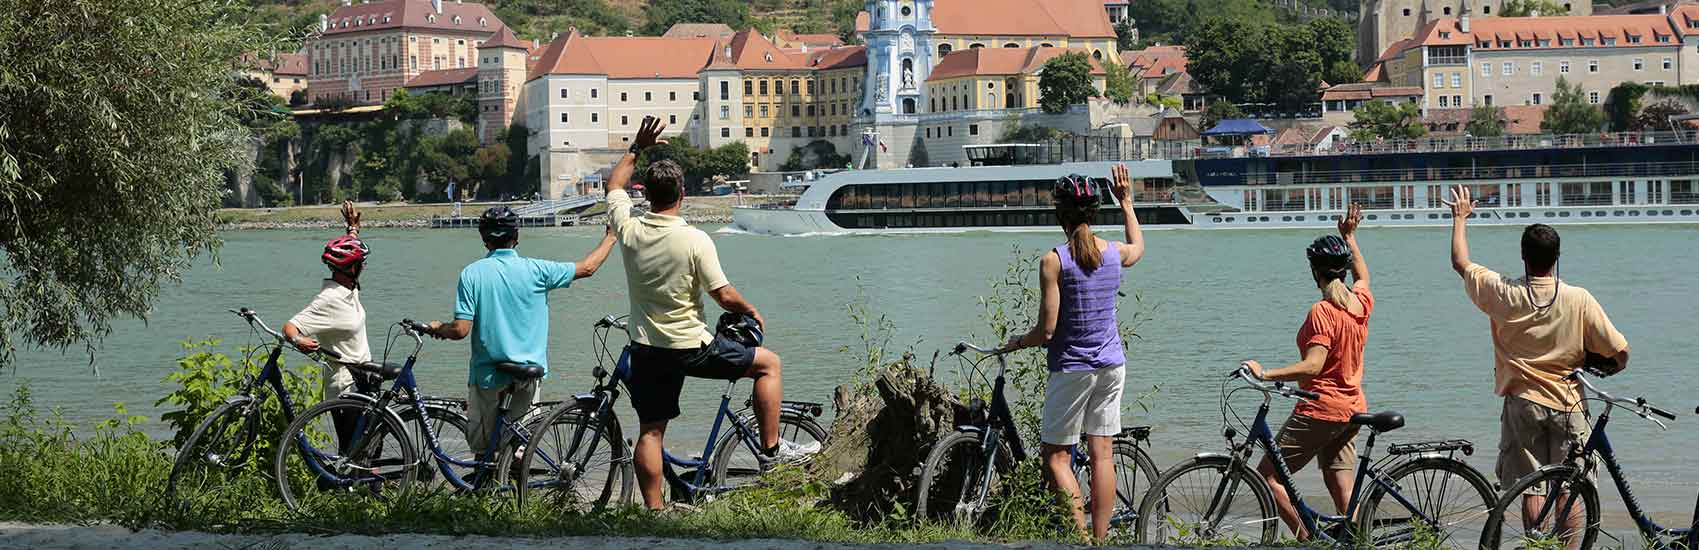 Exclusive 2-for-1 Cruise Savings on Select European River Cruises 1